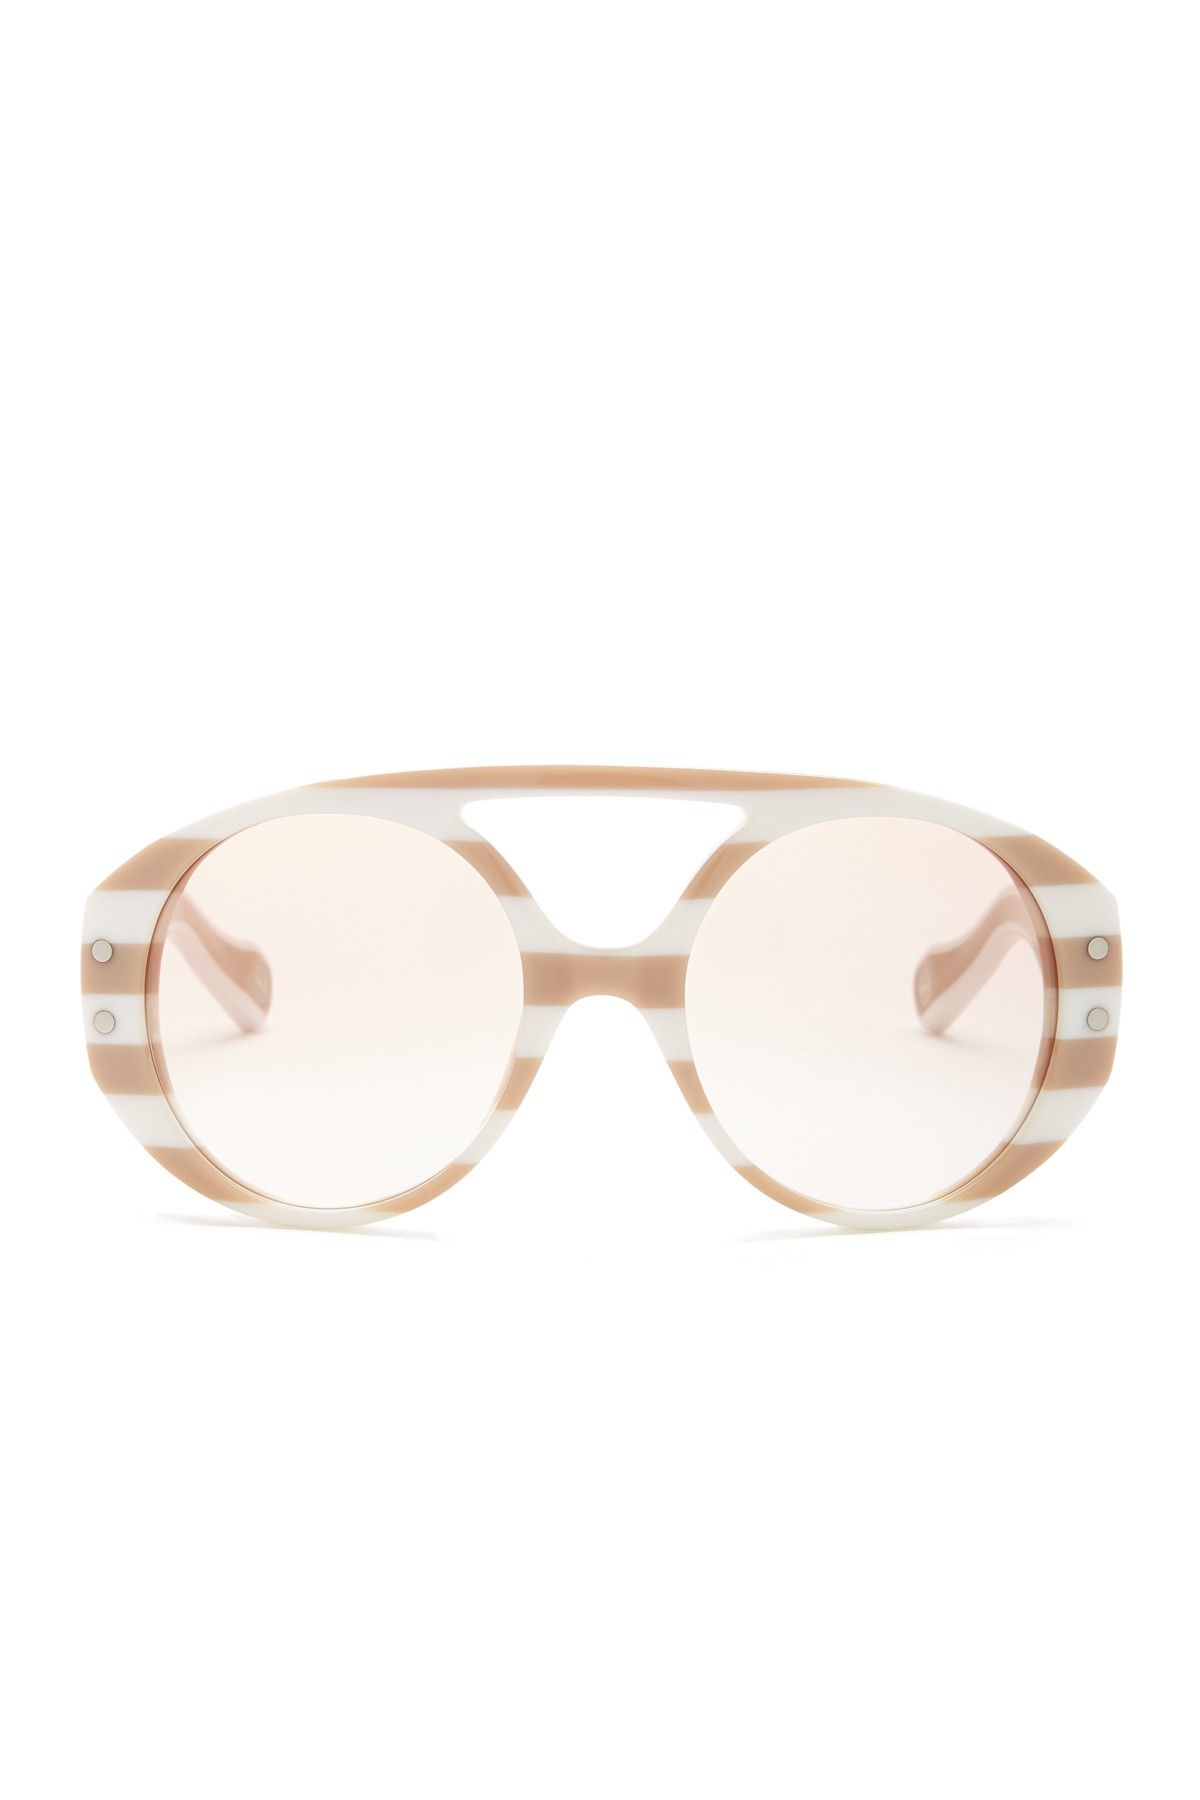 1a989d7f0d90 How cool are these Marc Jacobs Striped Plastic Sunglasses ...